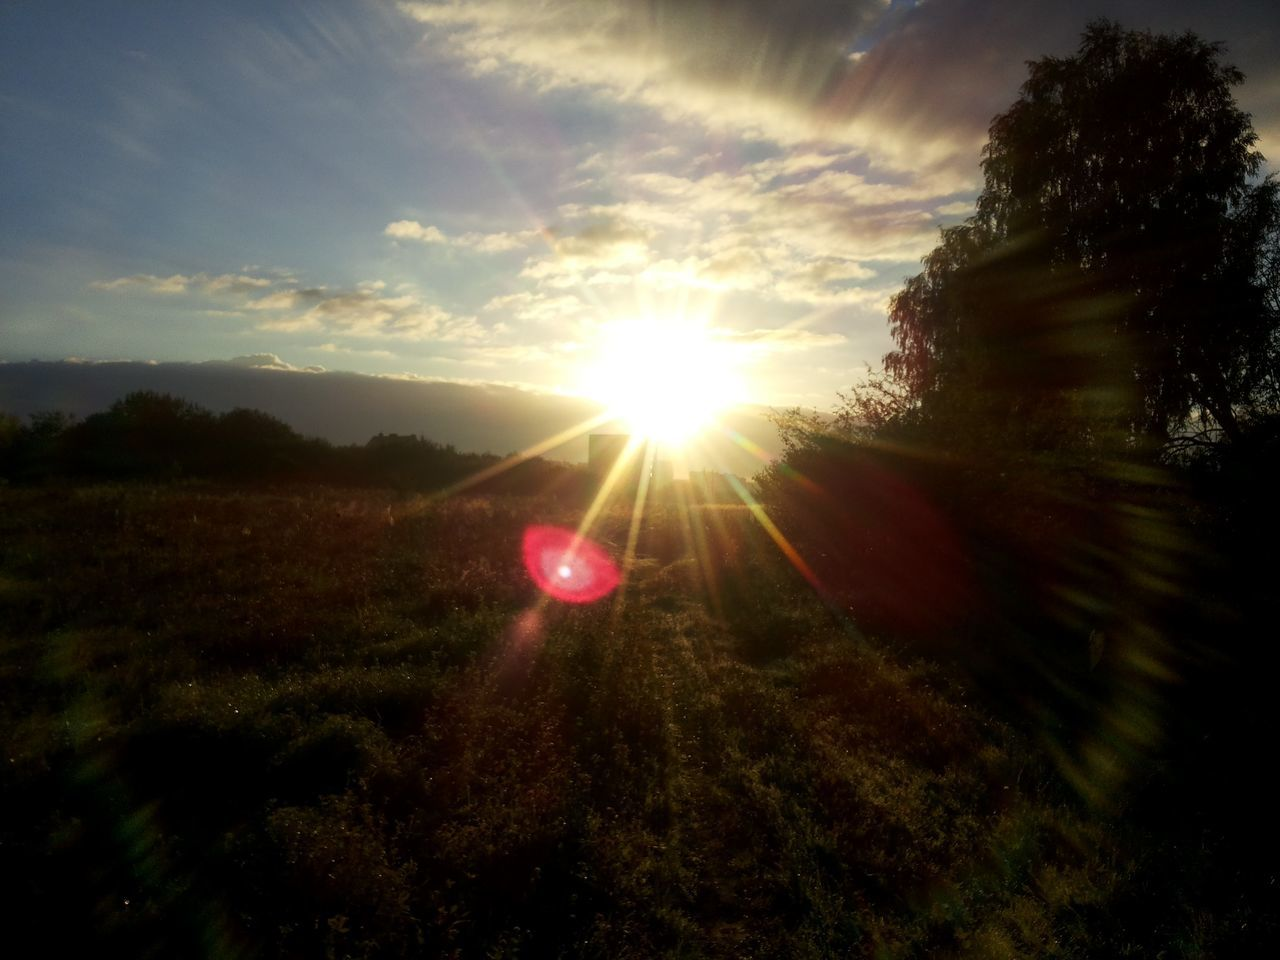 sun, nature, sunbeam, sunset, beauty in nature, sunlight, tree, growth, scenics, tranquility, outdoors, no people, landscape, sky, day